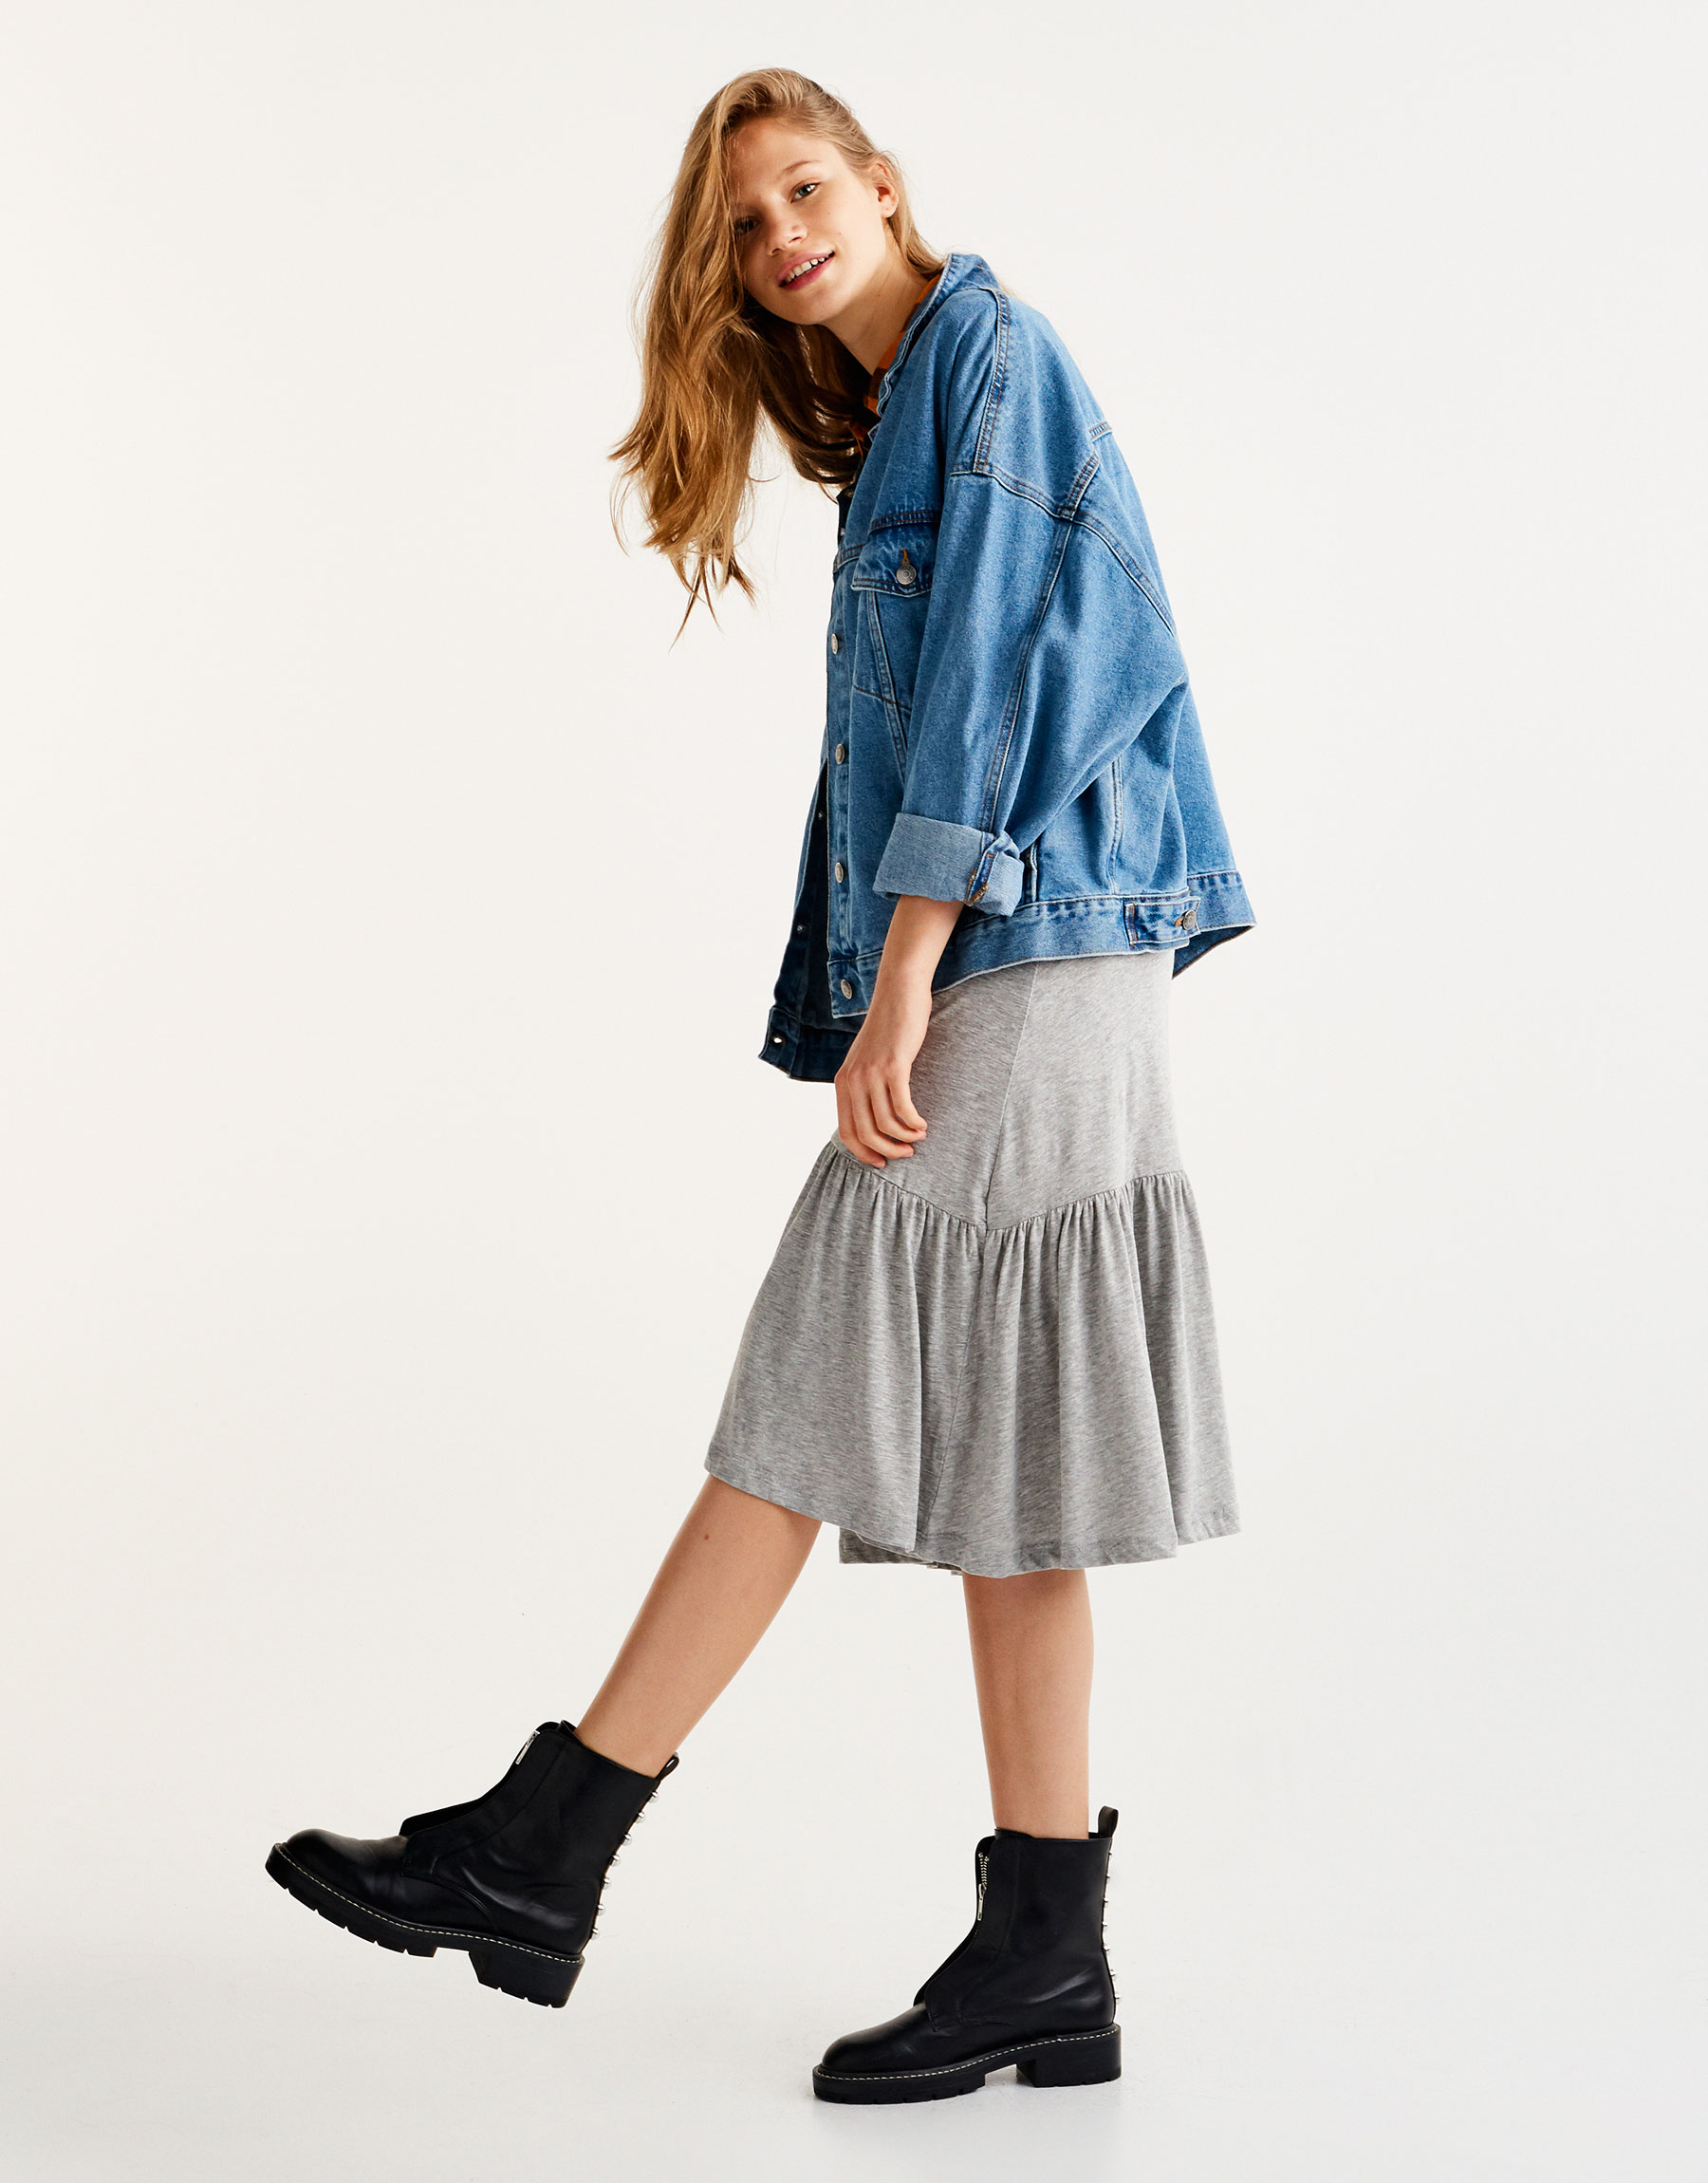 Midi skirt with ruffled hem